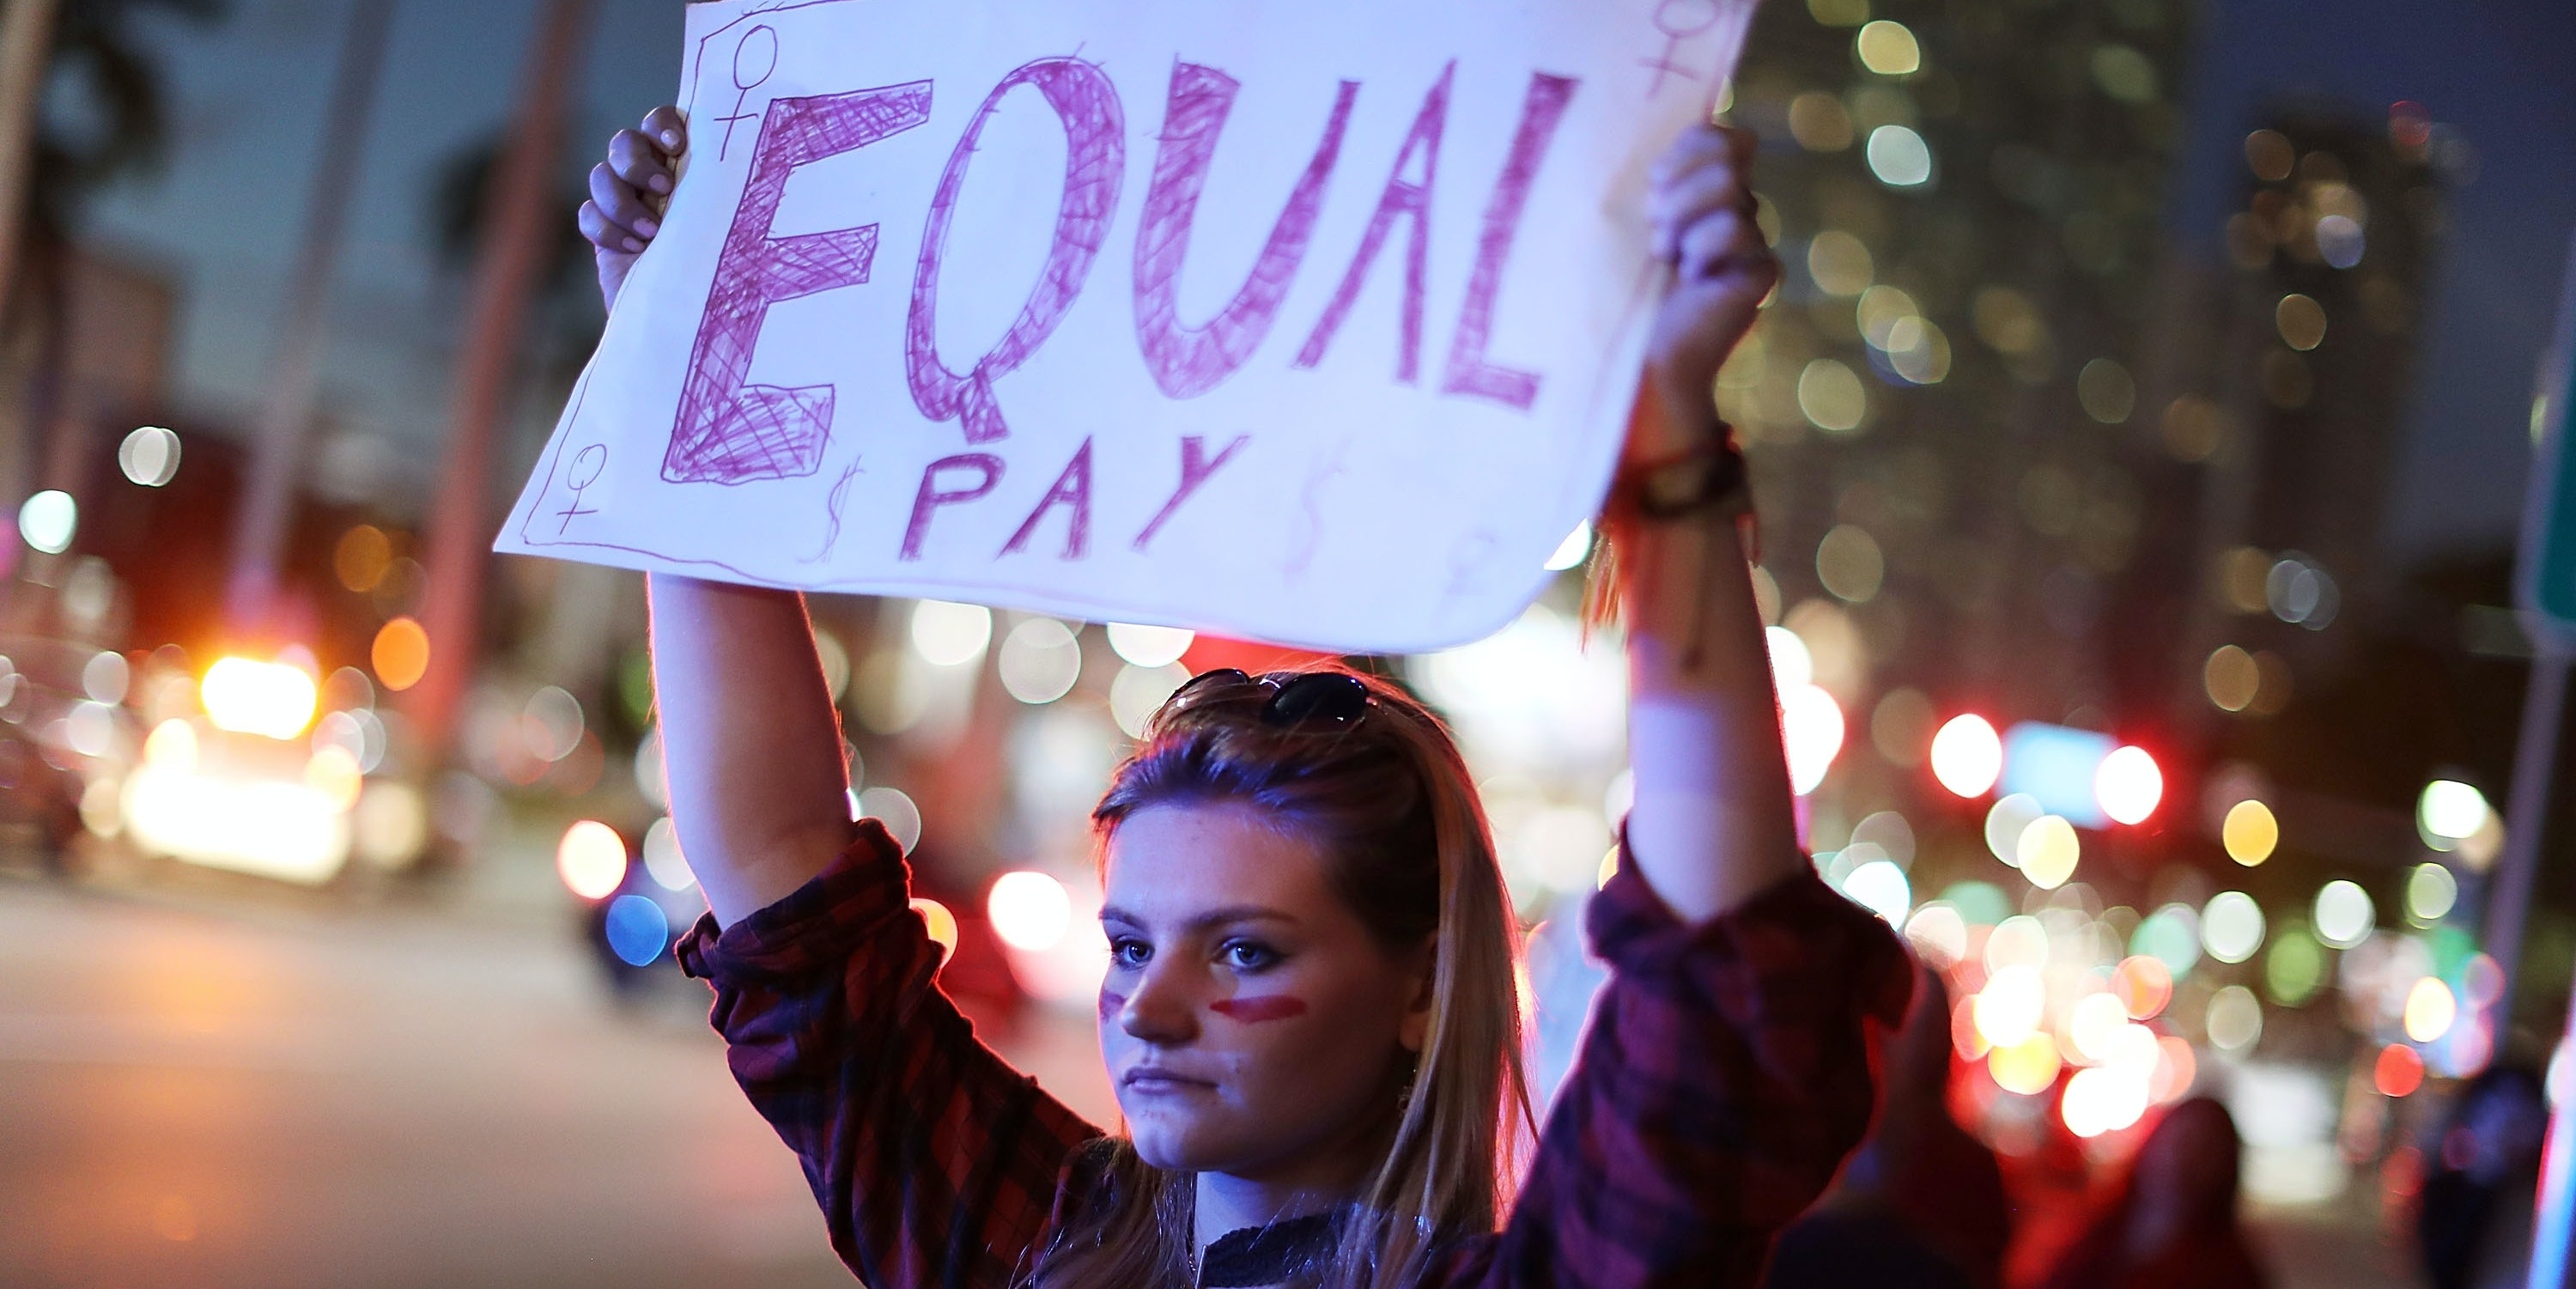 Gender Inequality has Actually Gotten Worse, According to New Data